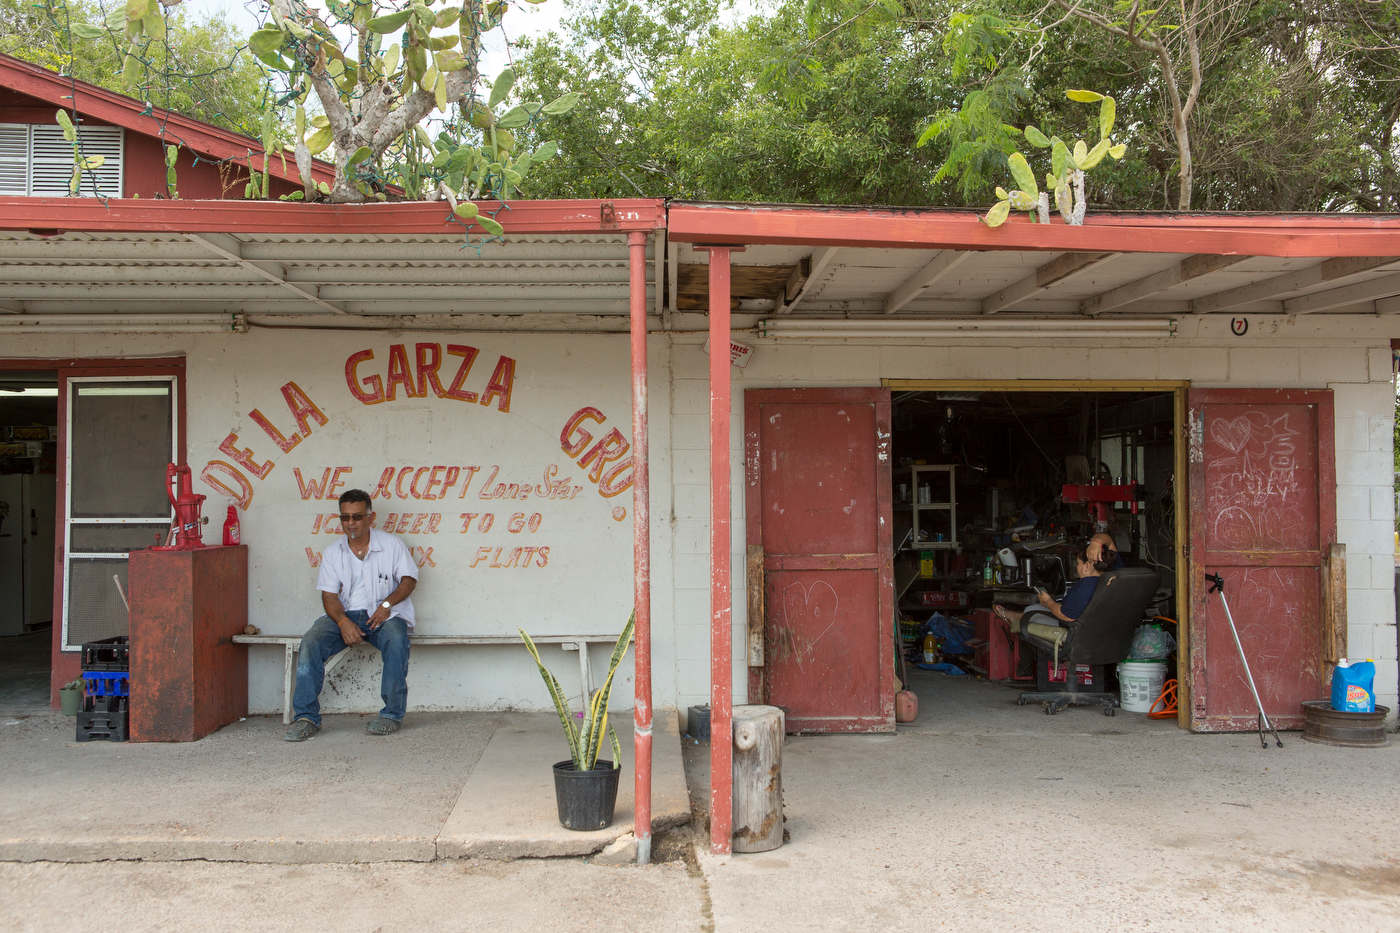 Martin De Lagarza's grocery and tire shop seats right across the wall separatig the U.S. and Mexico.